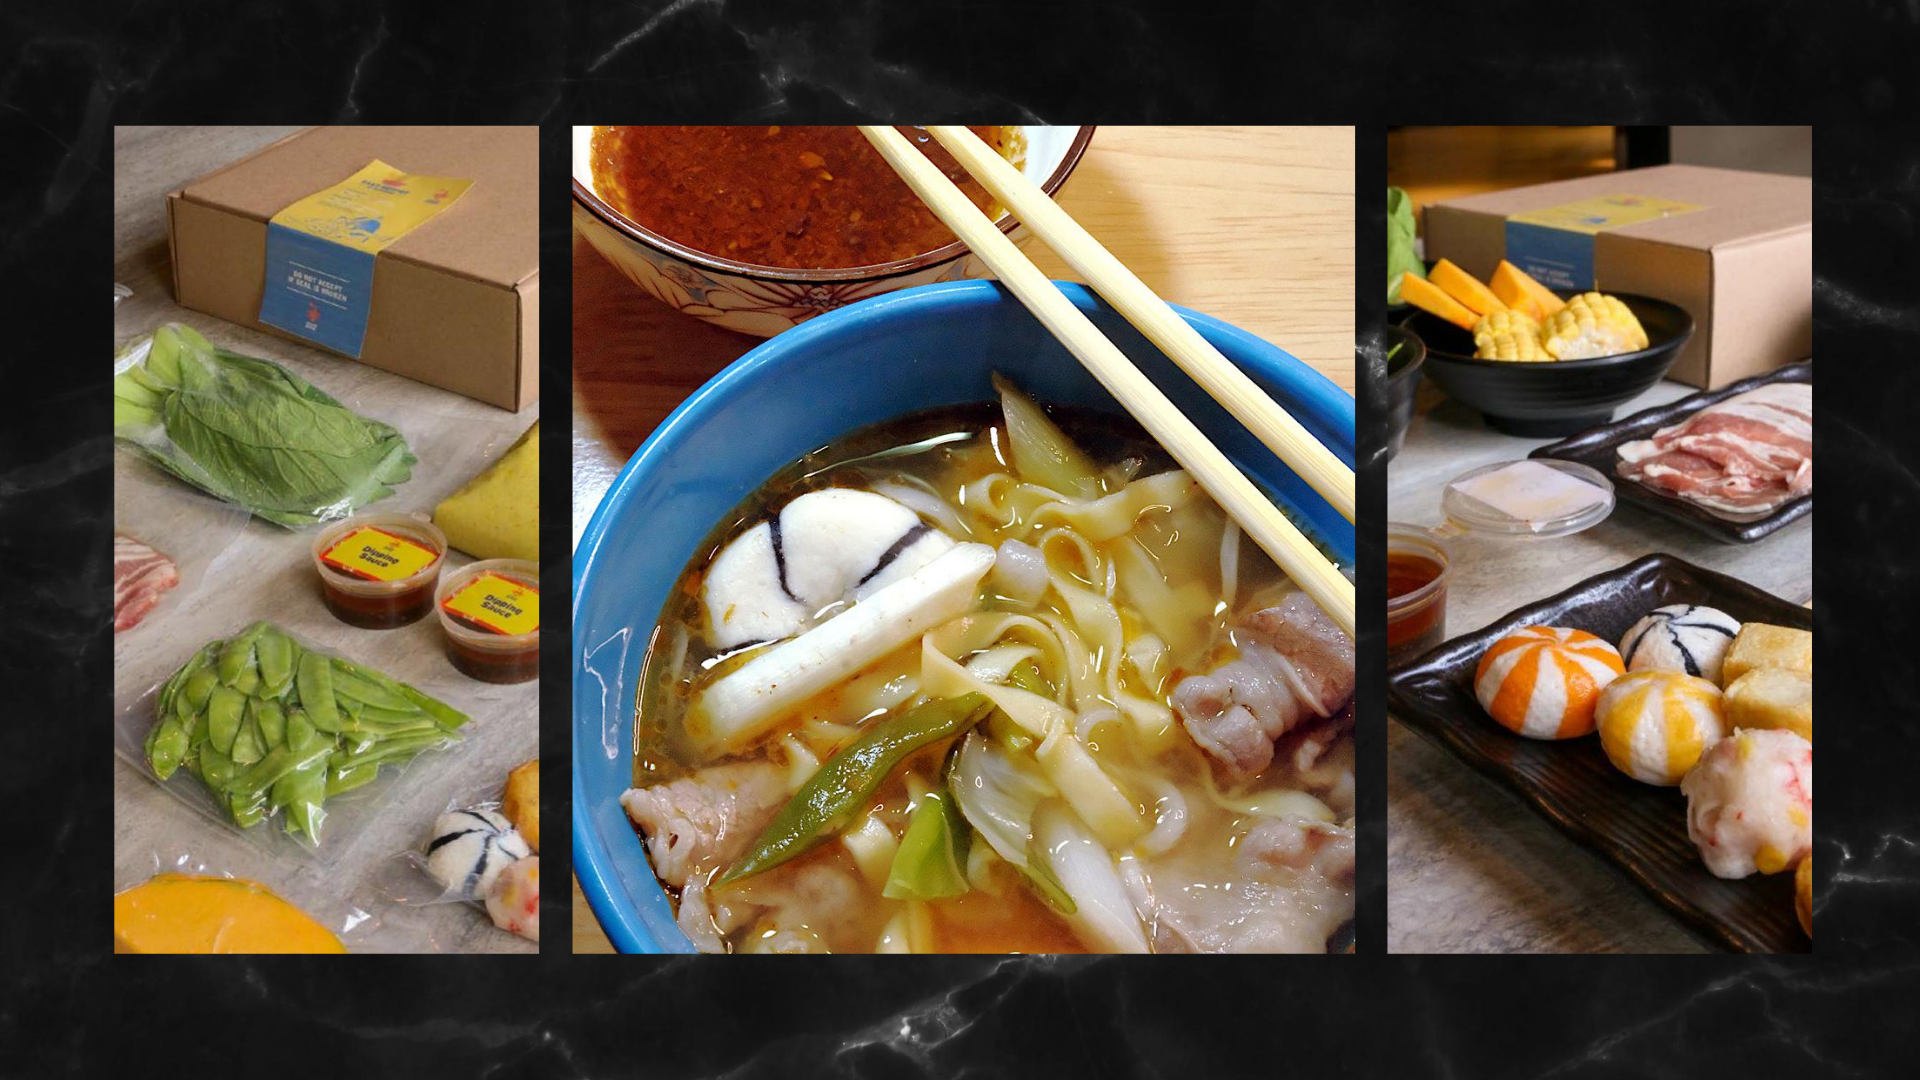 WATCH: Make Hotpot at Home With Champion's Easy Hotpot Kit